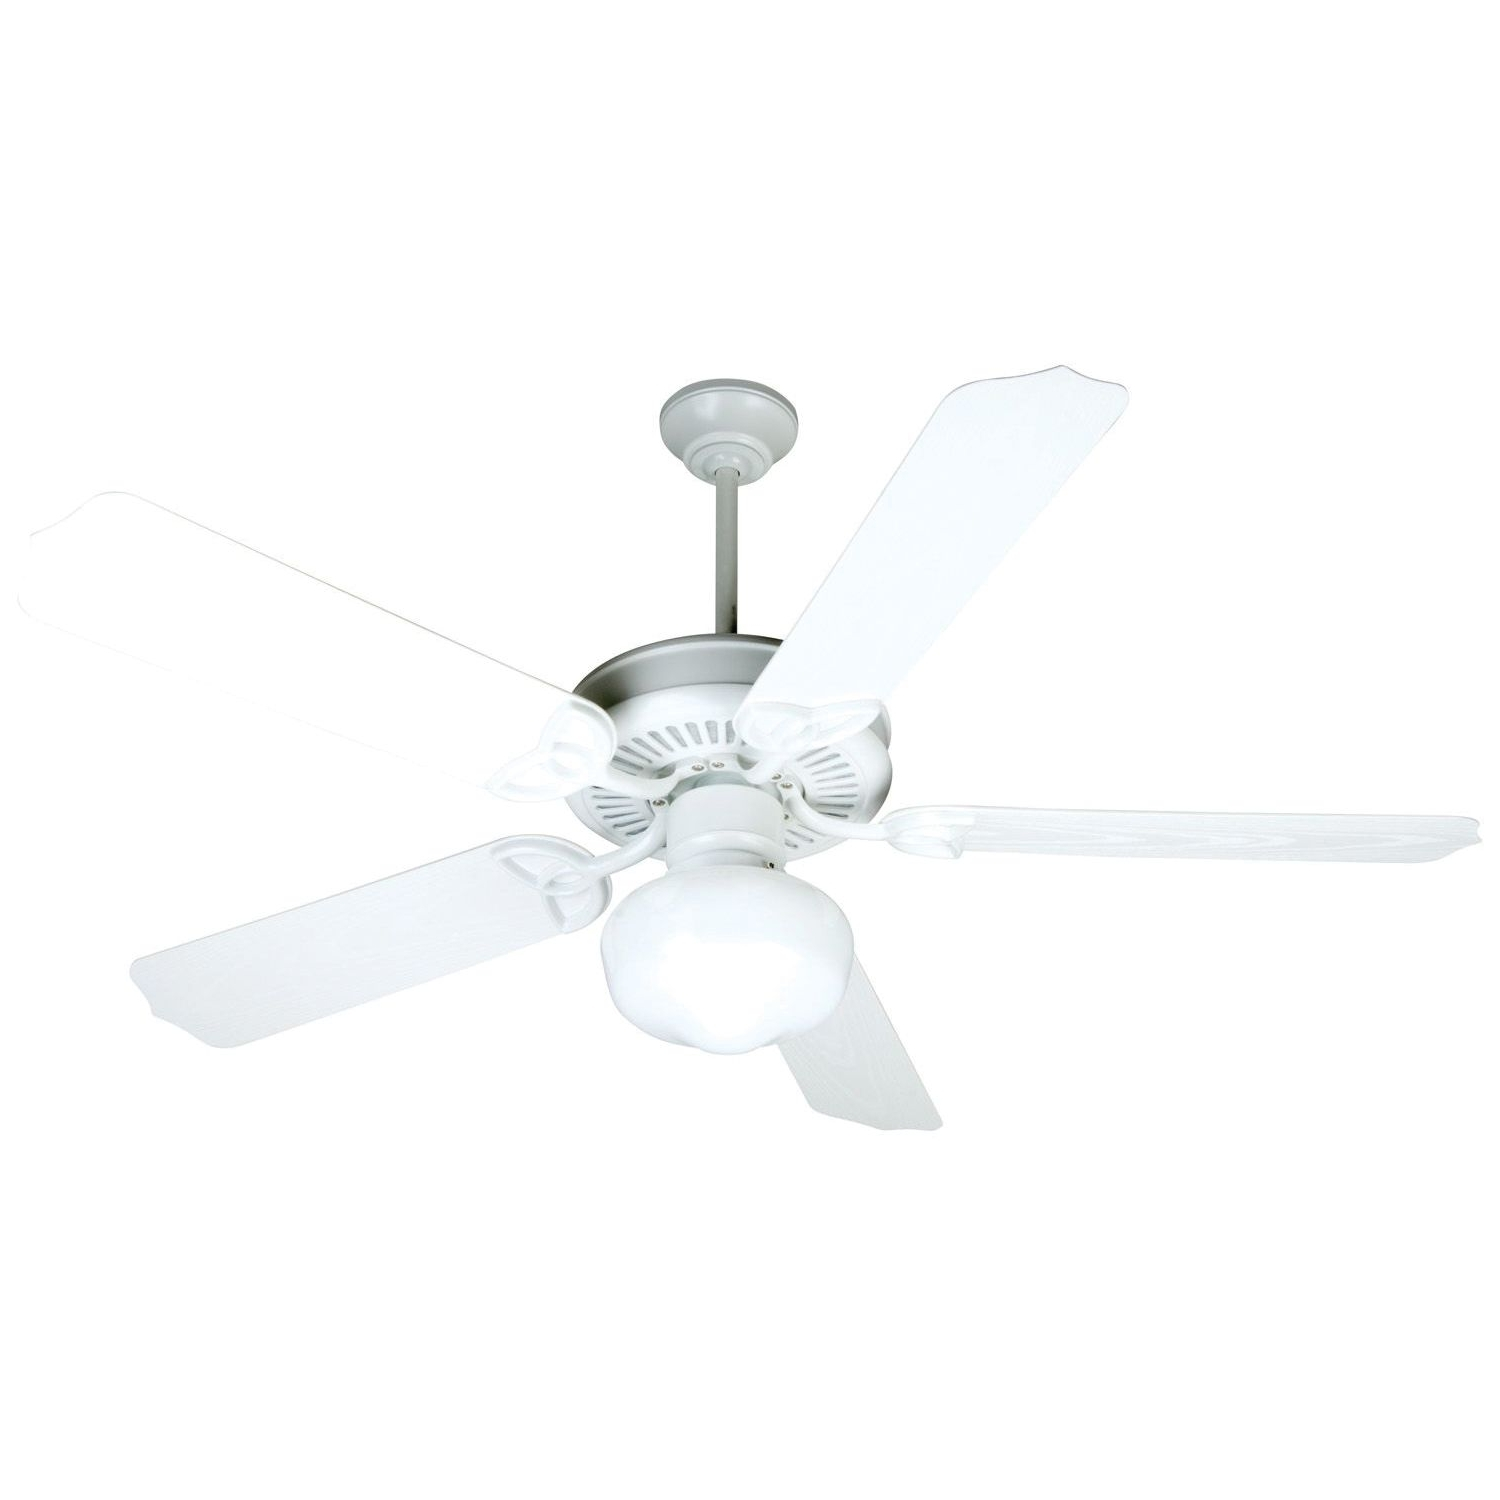 Craftmade Opxl52W Heavy Duty Traditional Ceiling Fan 52 Inch White 5 In Fashionable Heavy Duty Outdoor Ceiling Fans (View 5 of 20)